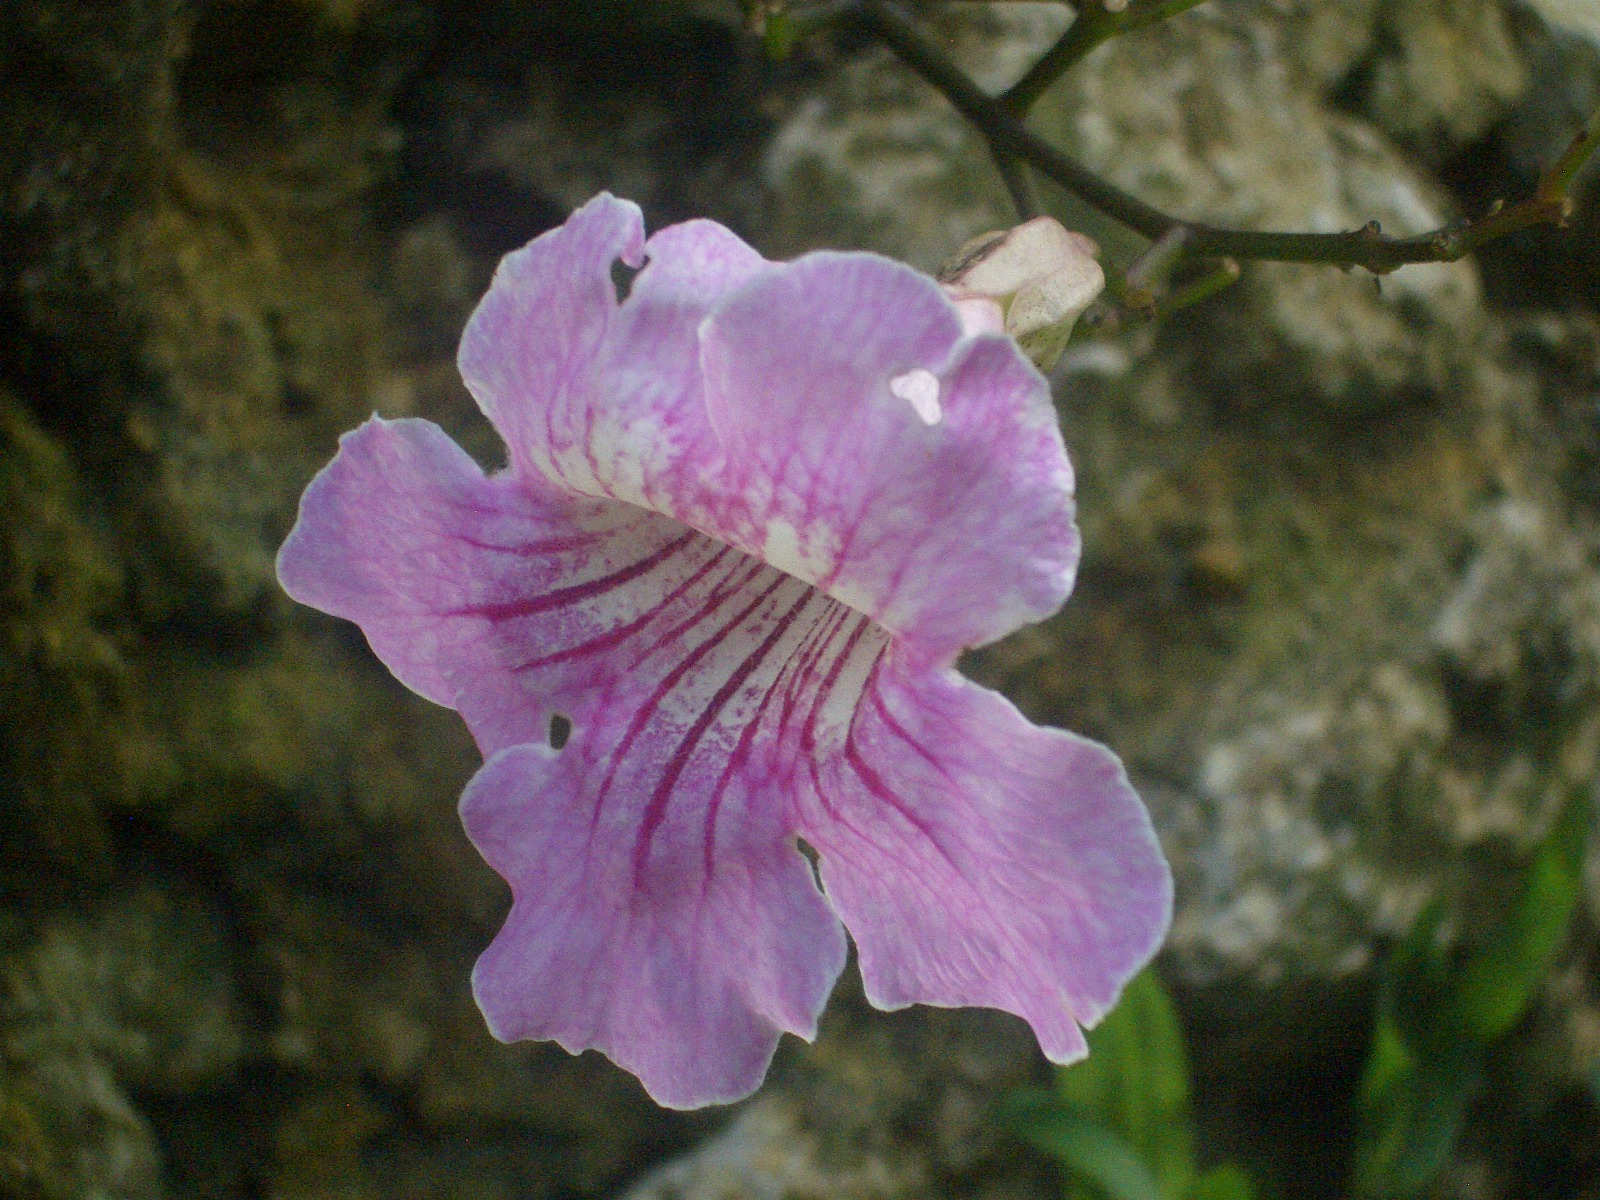 Eileen first interest beautiful plants and flowers outdoor and this is one of the plants podranea ricasoliana which i saw in kitma compound its planted at their wide lawn and gives out pink flowers profusely izmirmasajfo